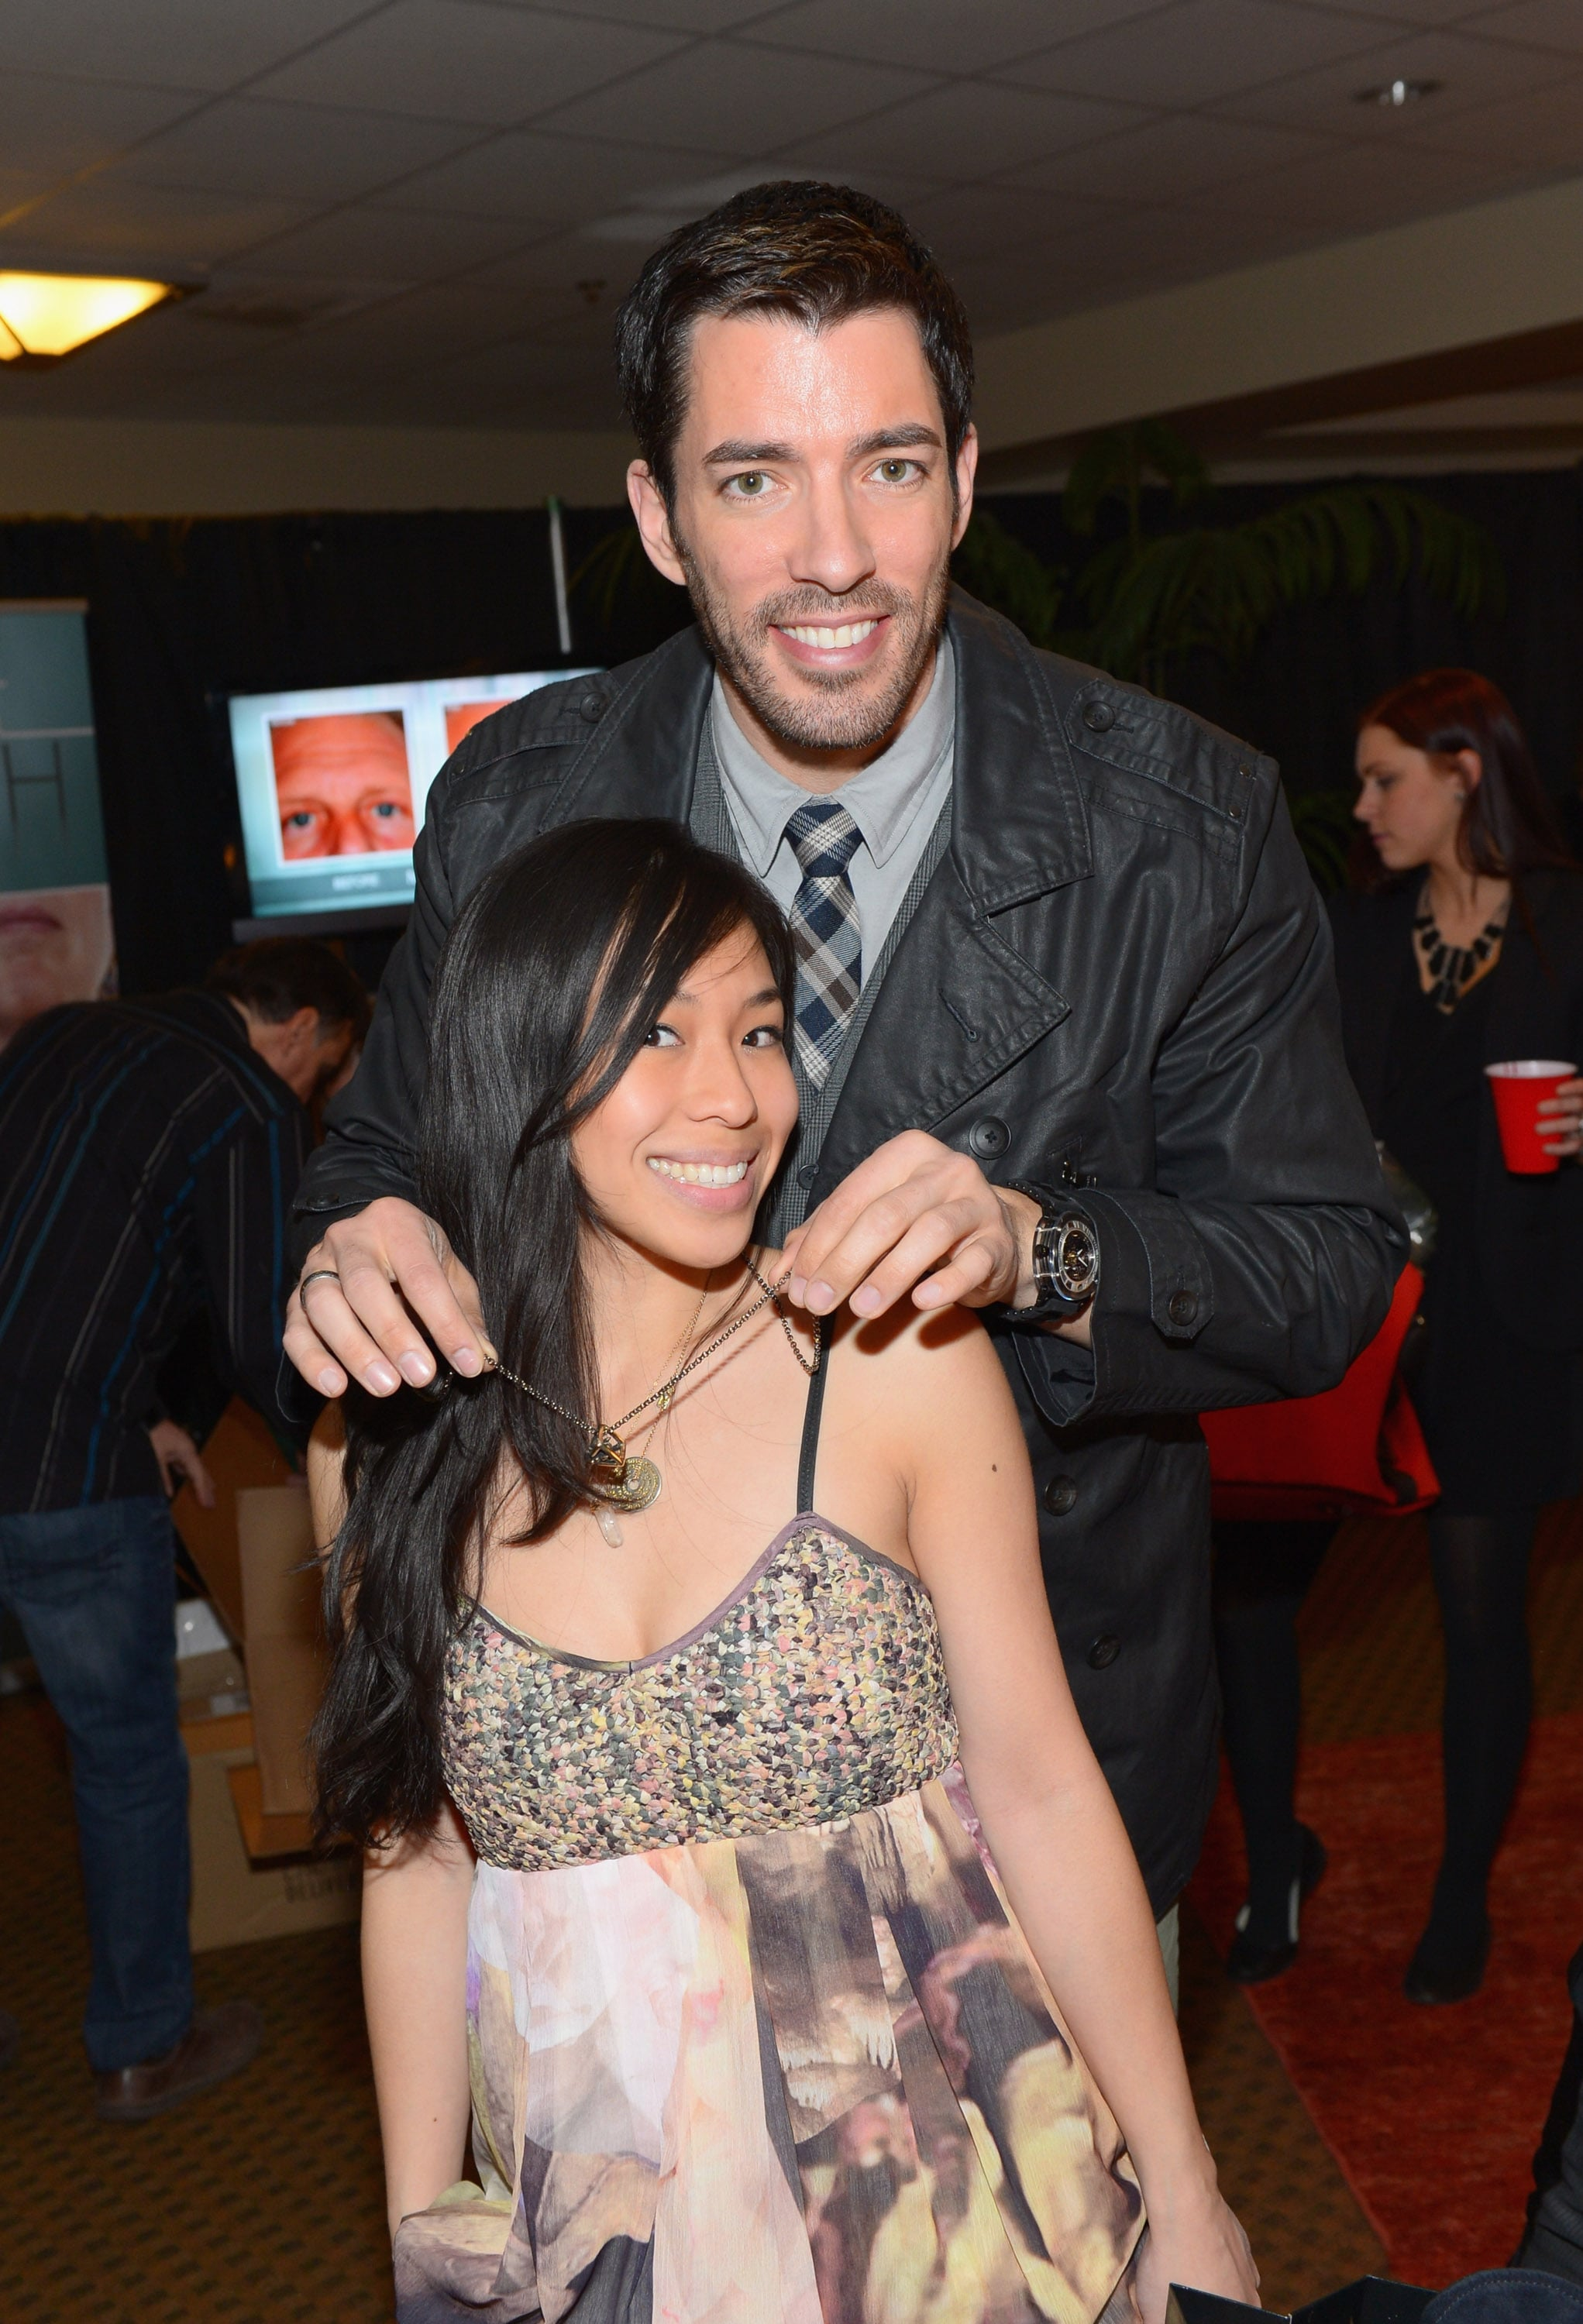 property brothers dating show They've now been dating  jonathan scott and drew scott of the show 'the property brothers' with  jonathan scott and drew scott visit aol.